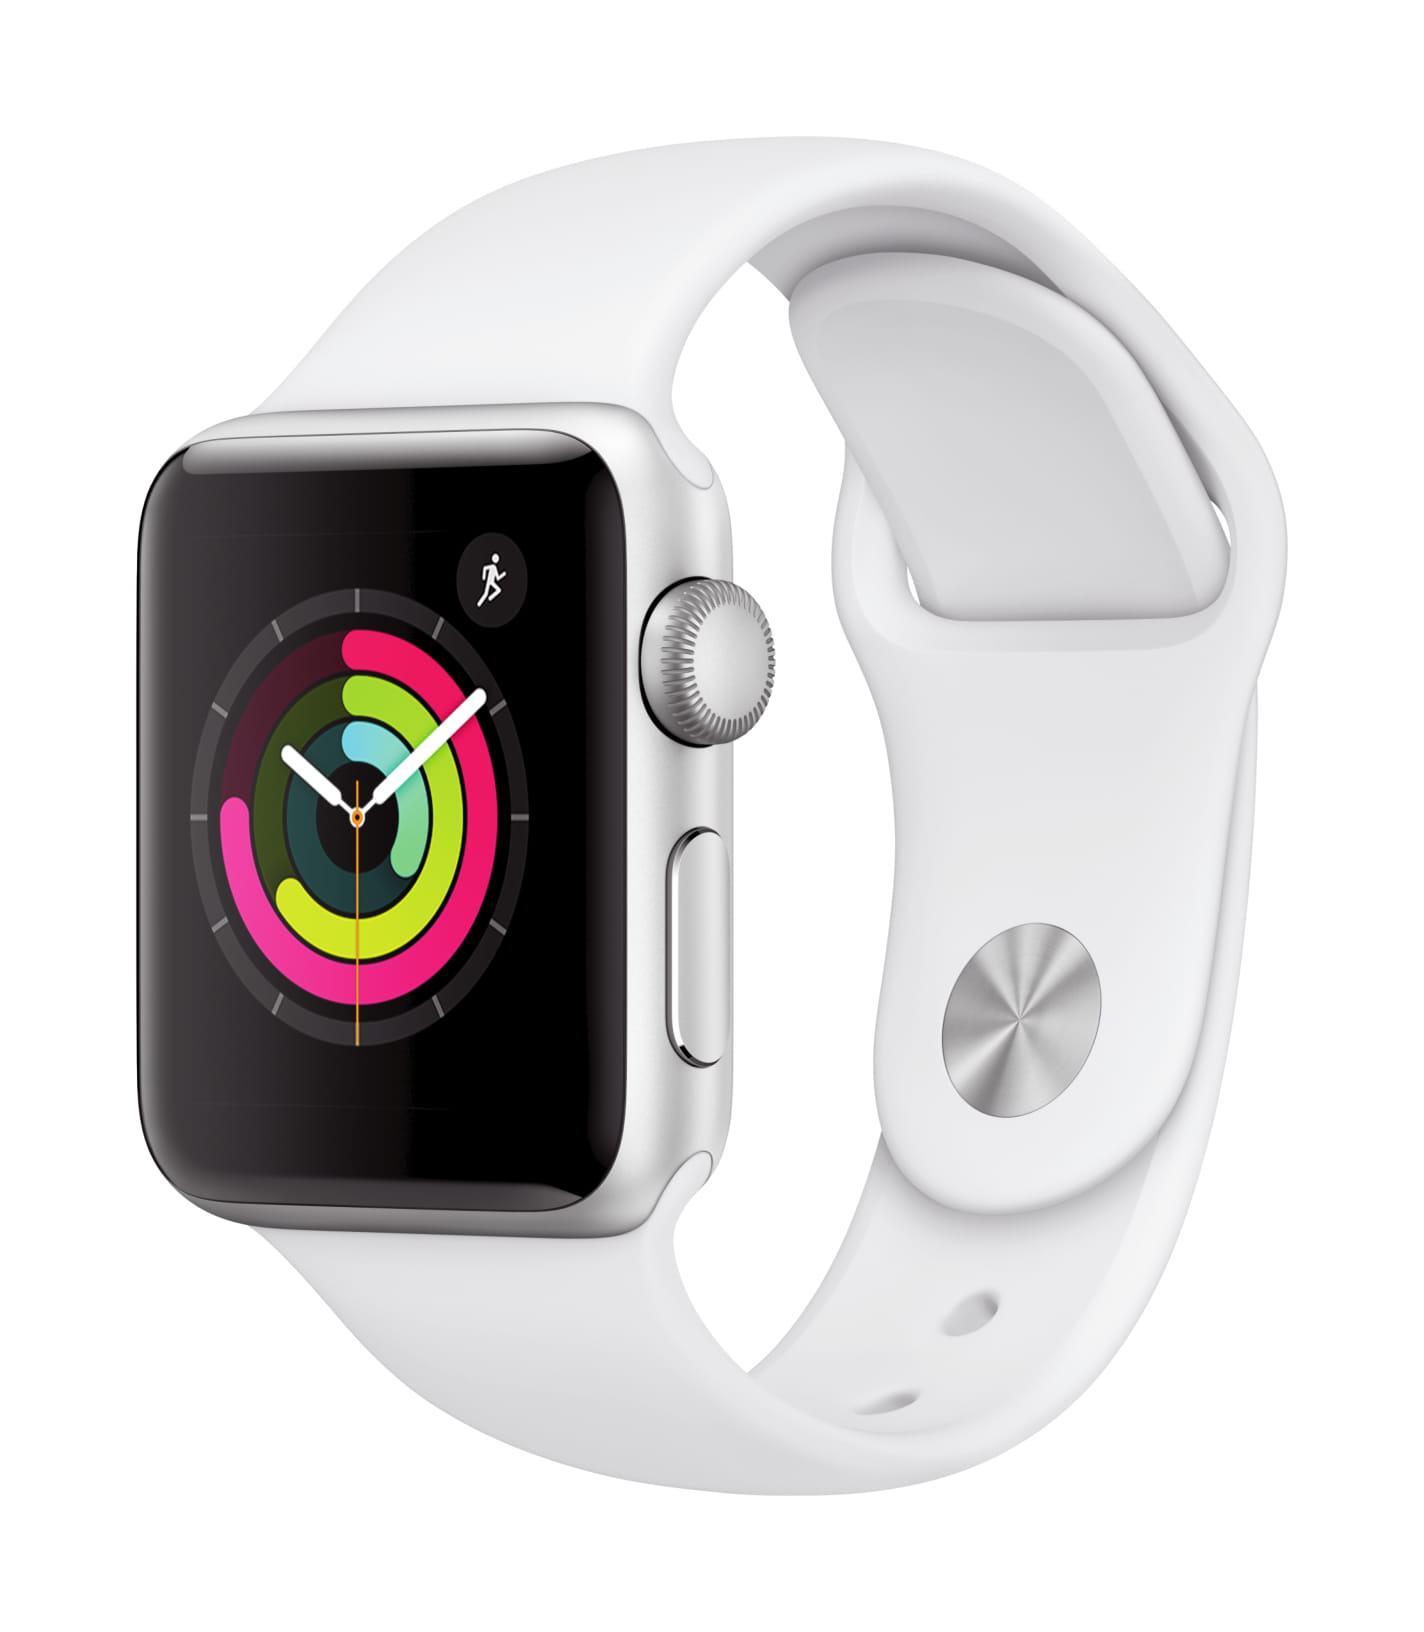 best website 8094d 0c980 Apple Watch Series 3 GPS - 38mm - Sport Band - Aluminum Case